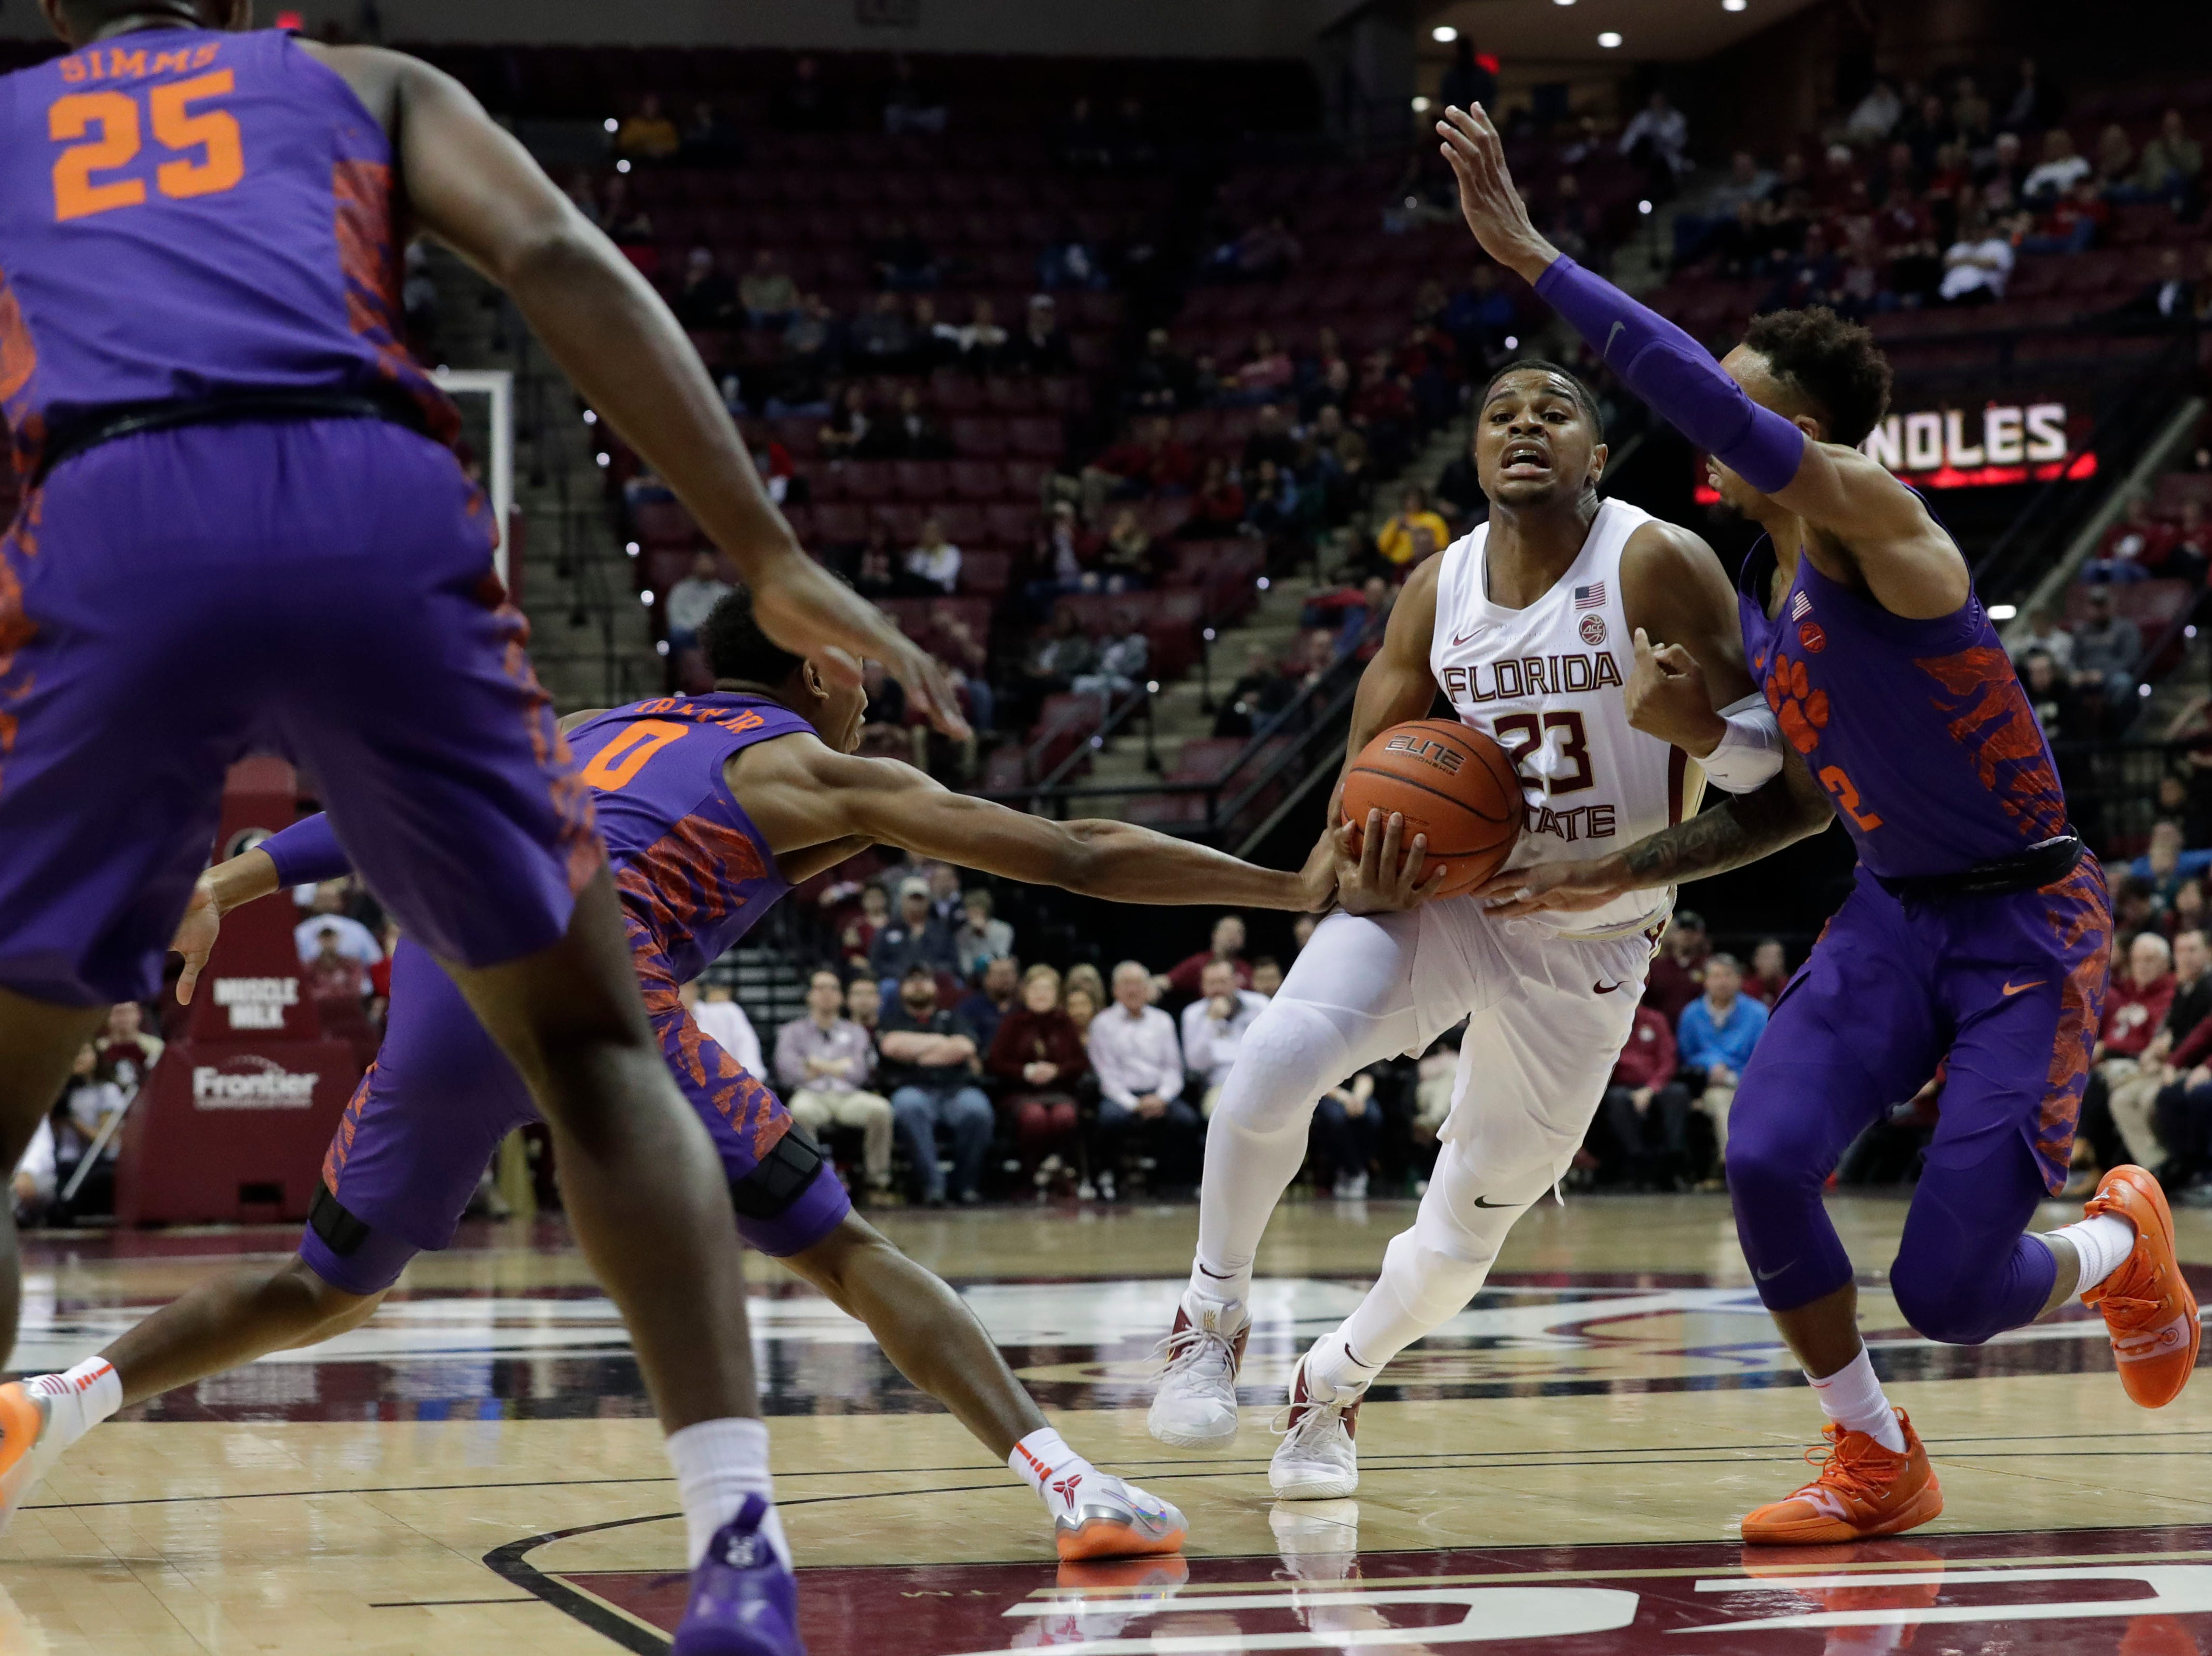 Florida State Seminoles guard M.J. Walker (23) drives the ball to the hoop between two defenders. The Florida State Seminoles face off against the Clemson Tigers at the Tucker Civic Center, Tuesday, Jan. 22, 2019.